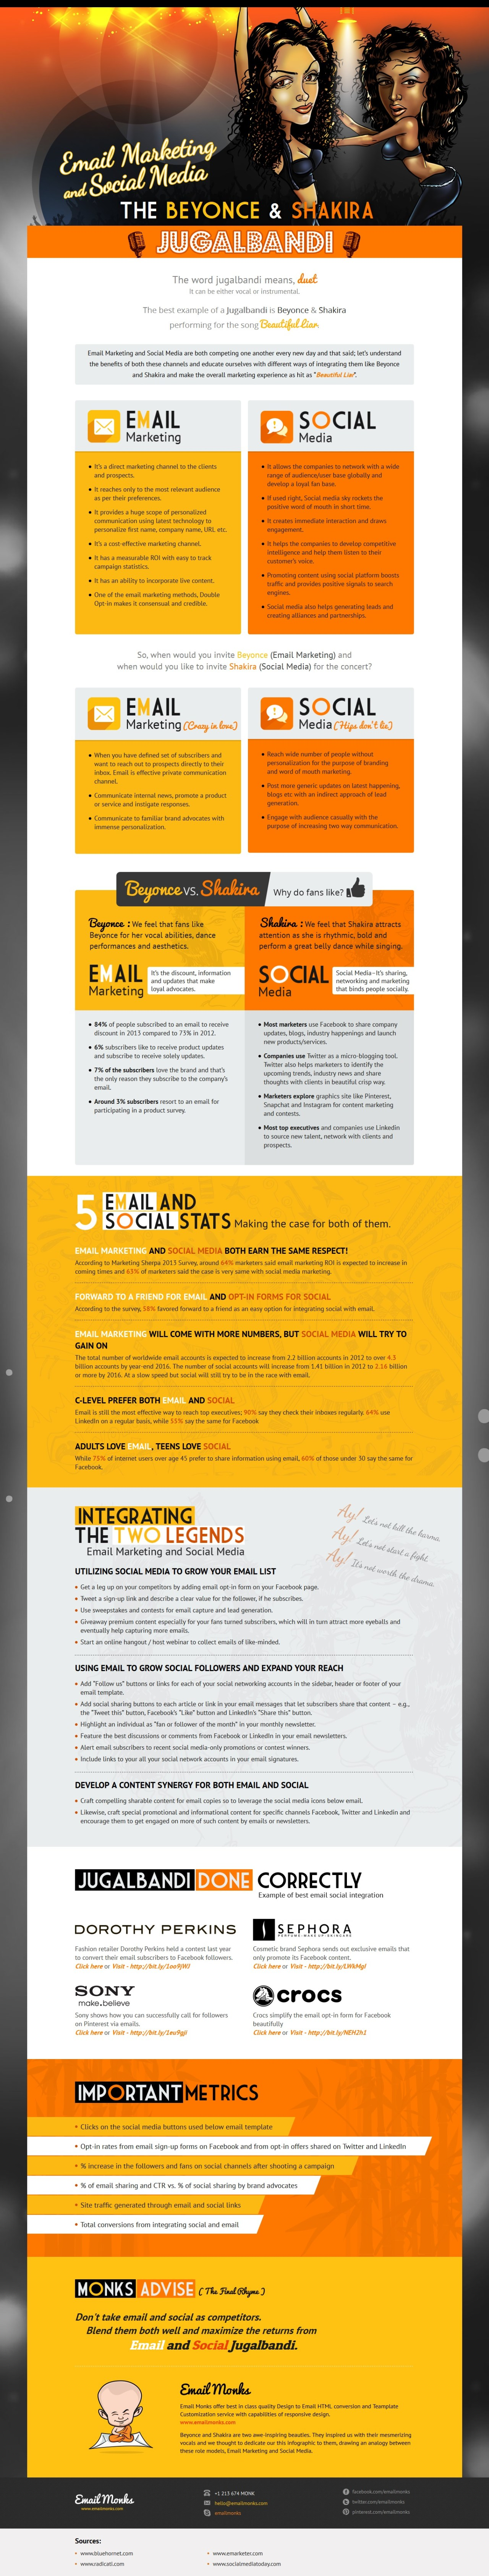 Email Marketing and Social Media Jugalbandi